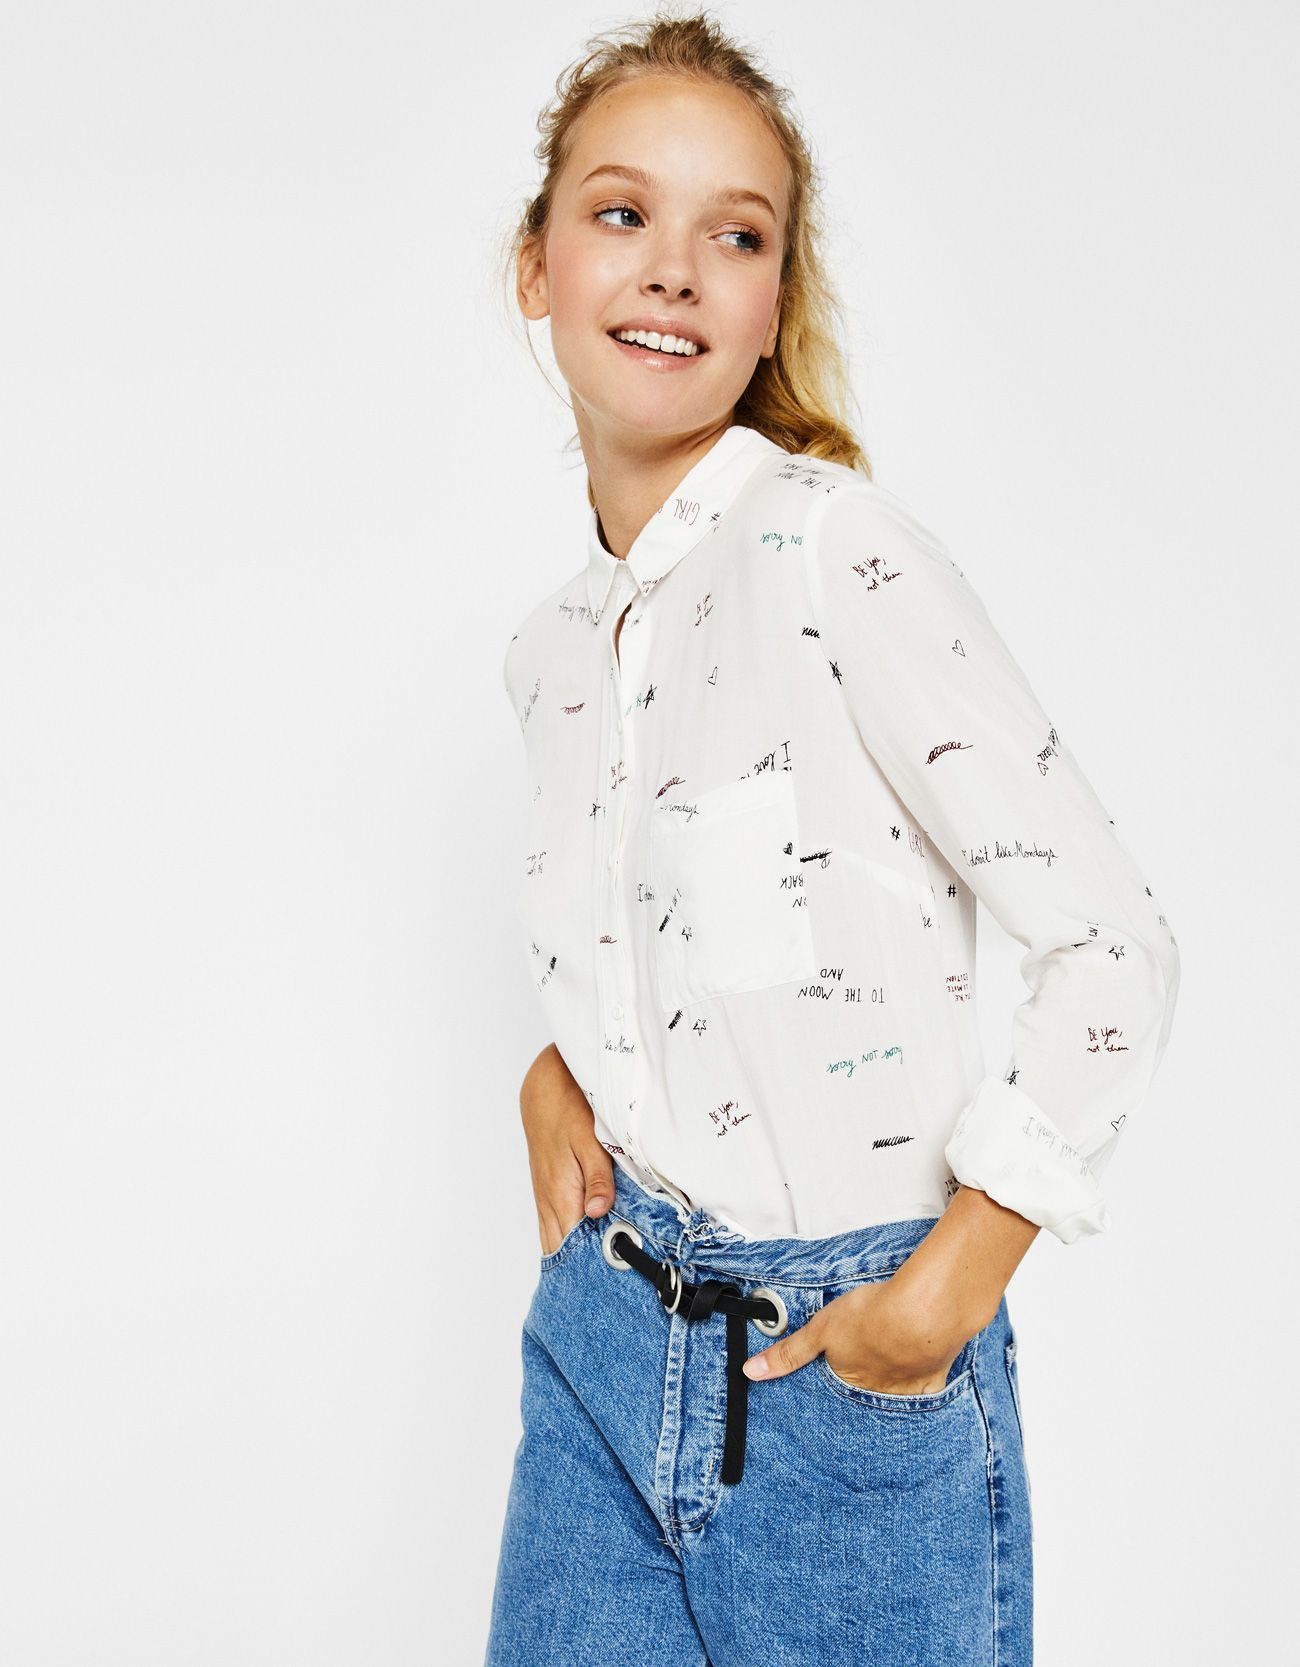 b2a00b581482f0 Cropped shirt with button-up back. Discover this and many more items in  Bershka with new products every week